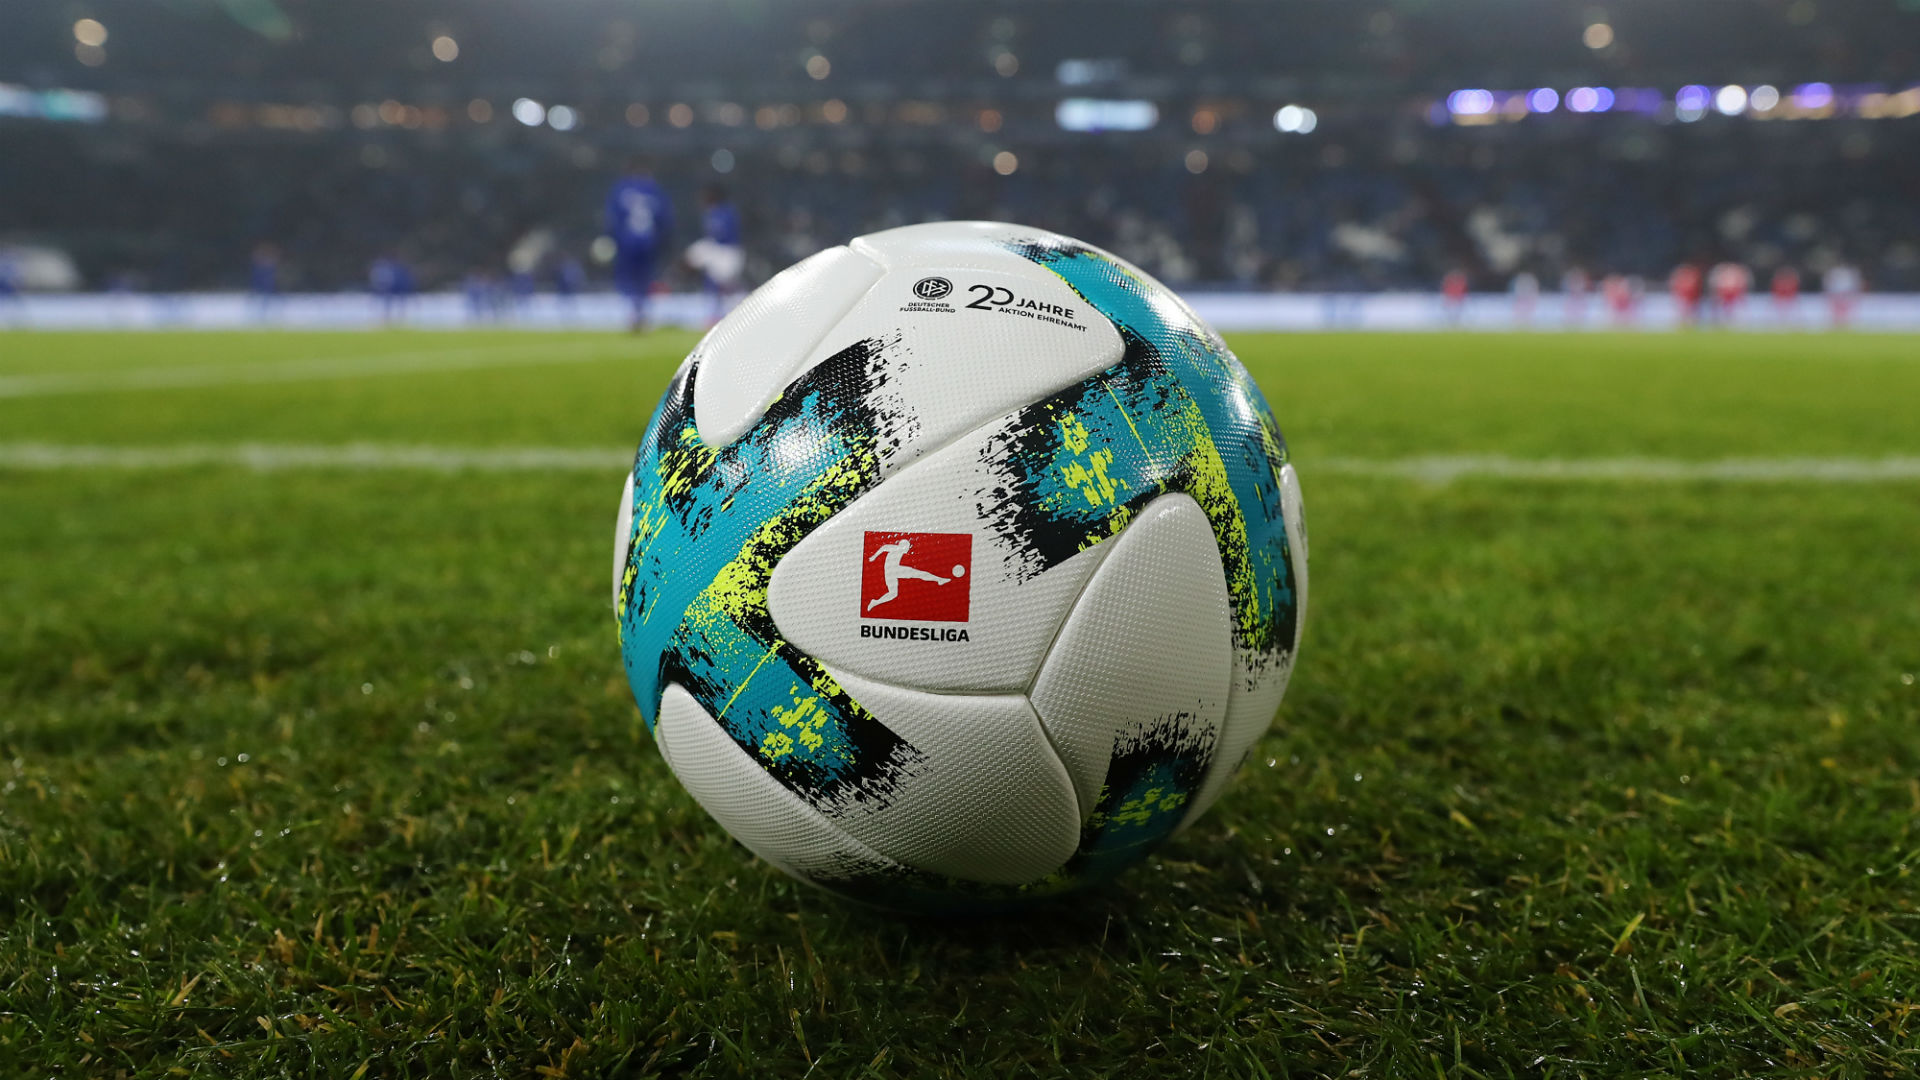 How to watch Bundesliga in the USA: Full TV schedule for 2020 season on Fox Sports channels